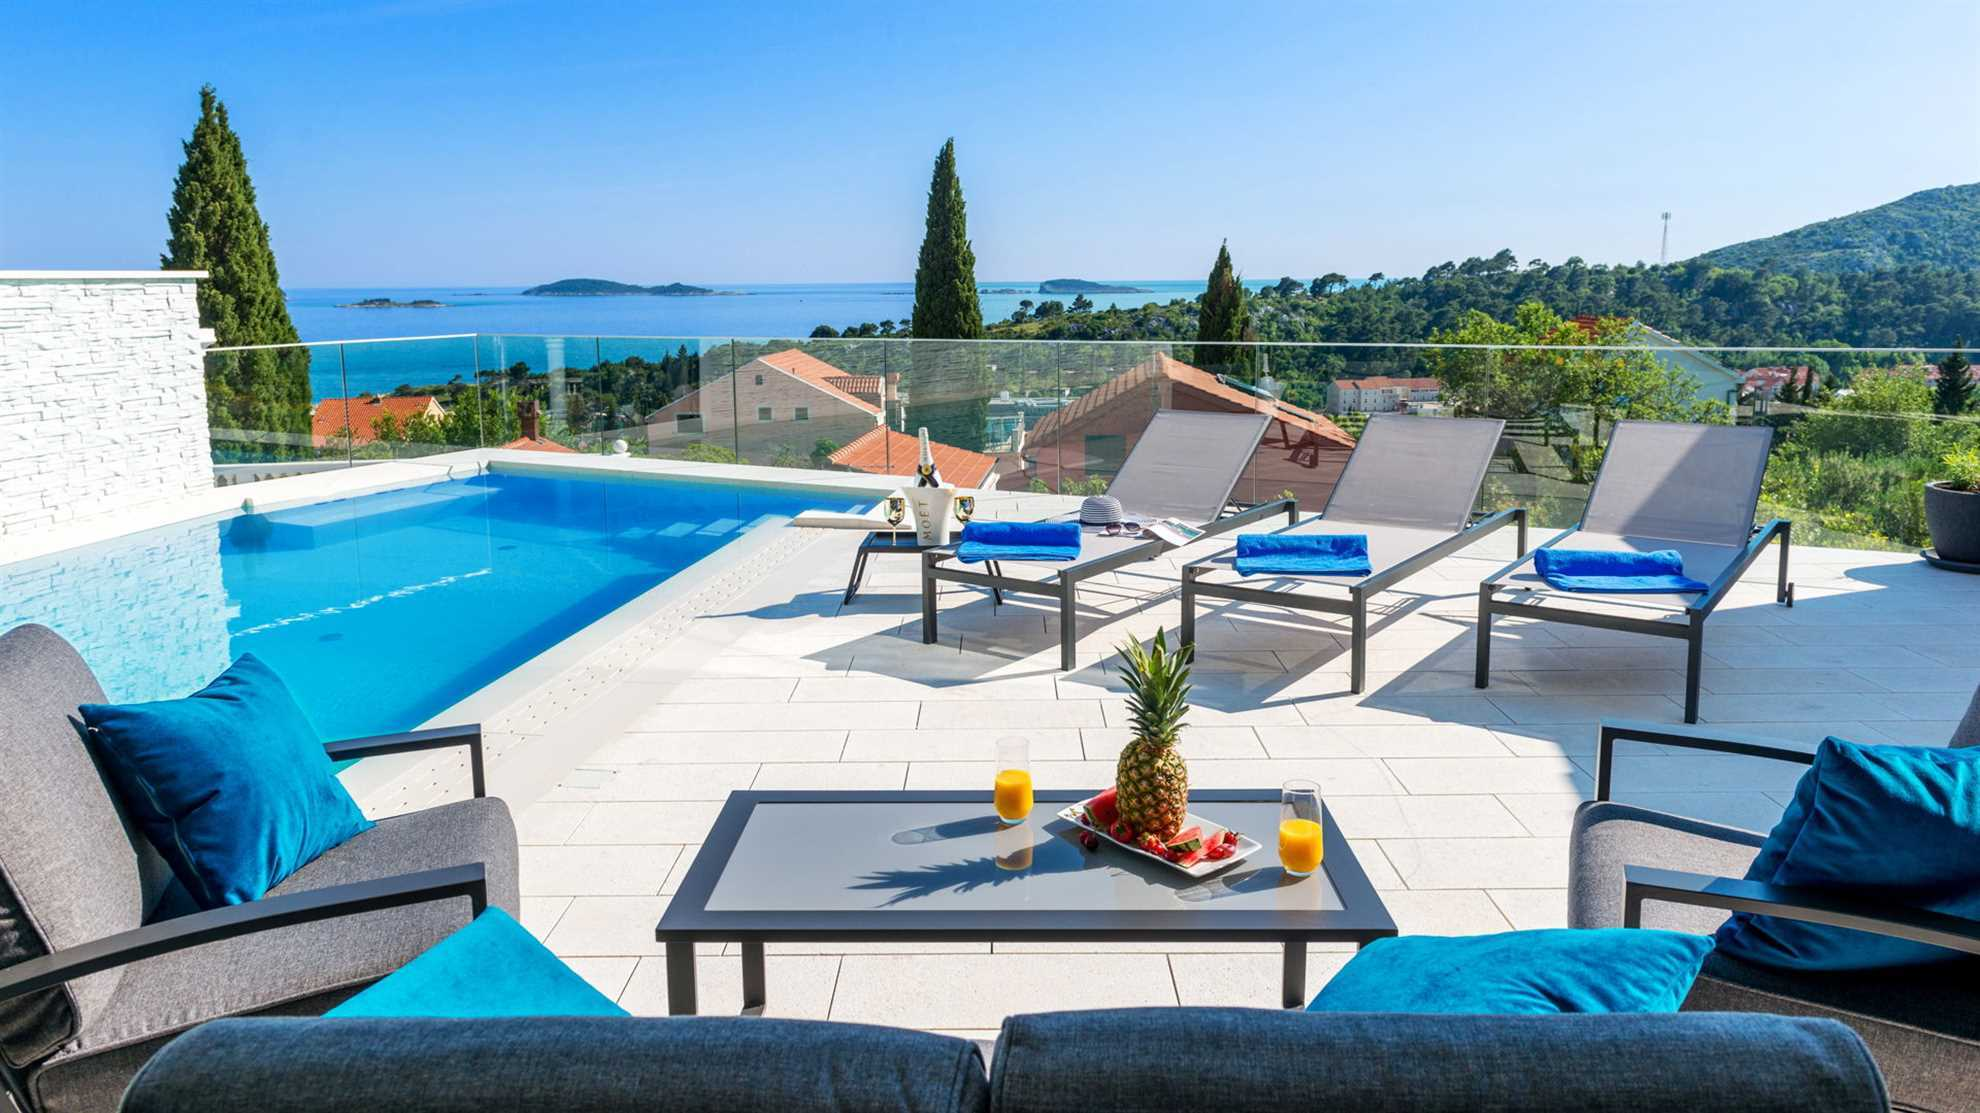 The view from Luxury Villa Elysian